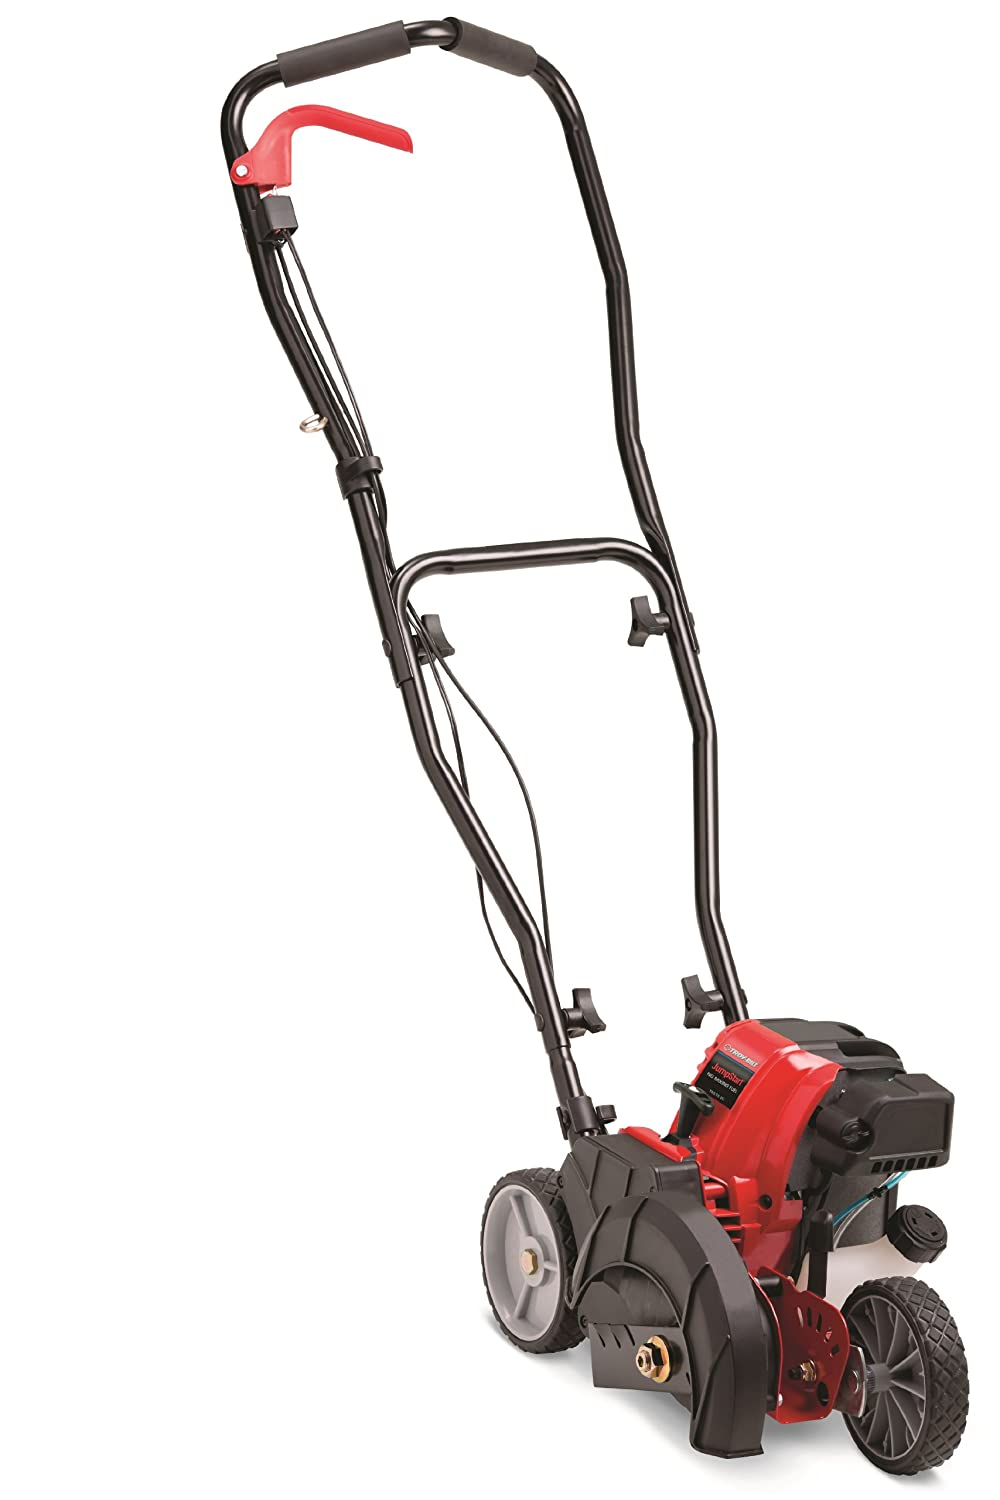 The Best Lawn Edger 6